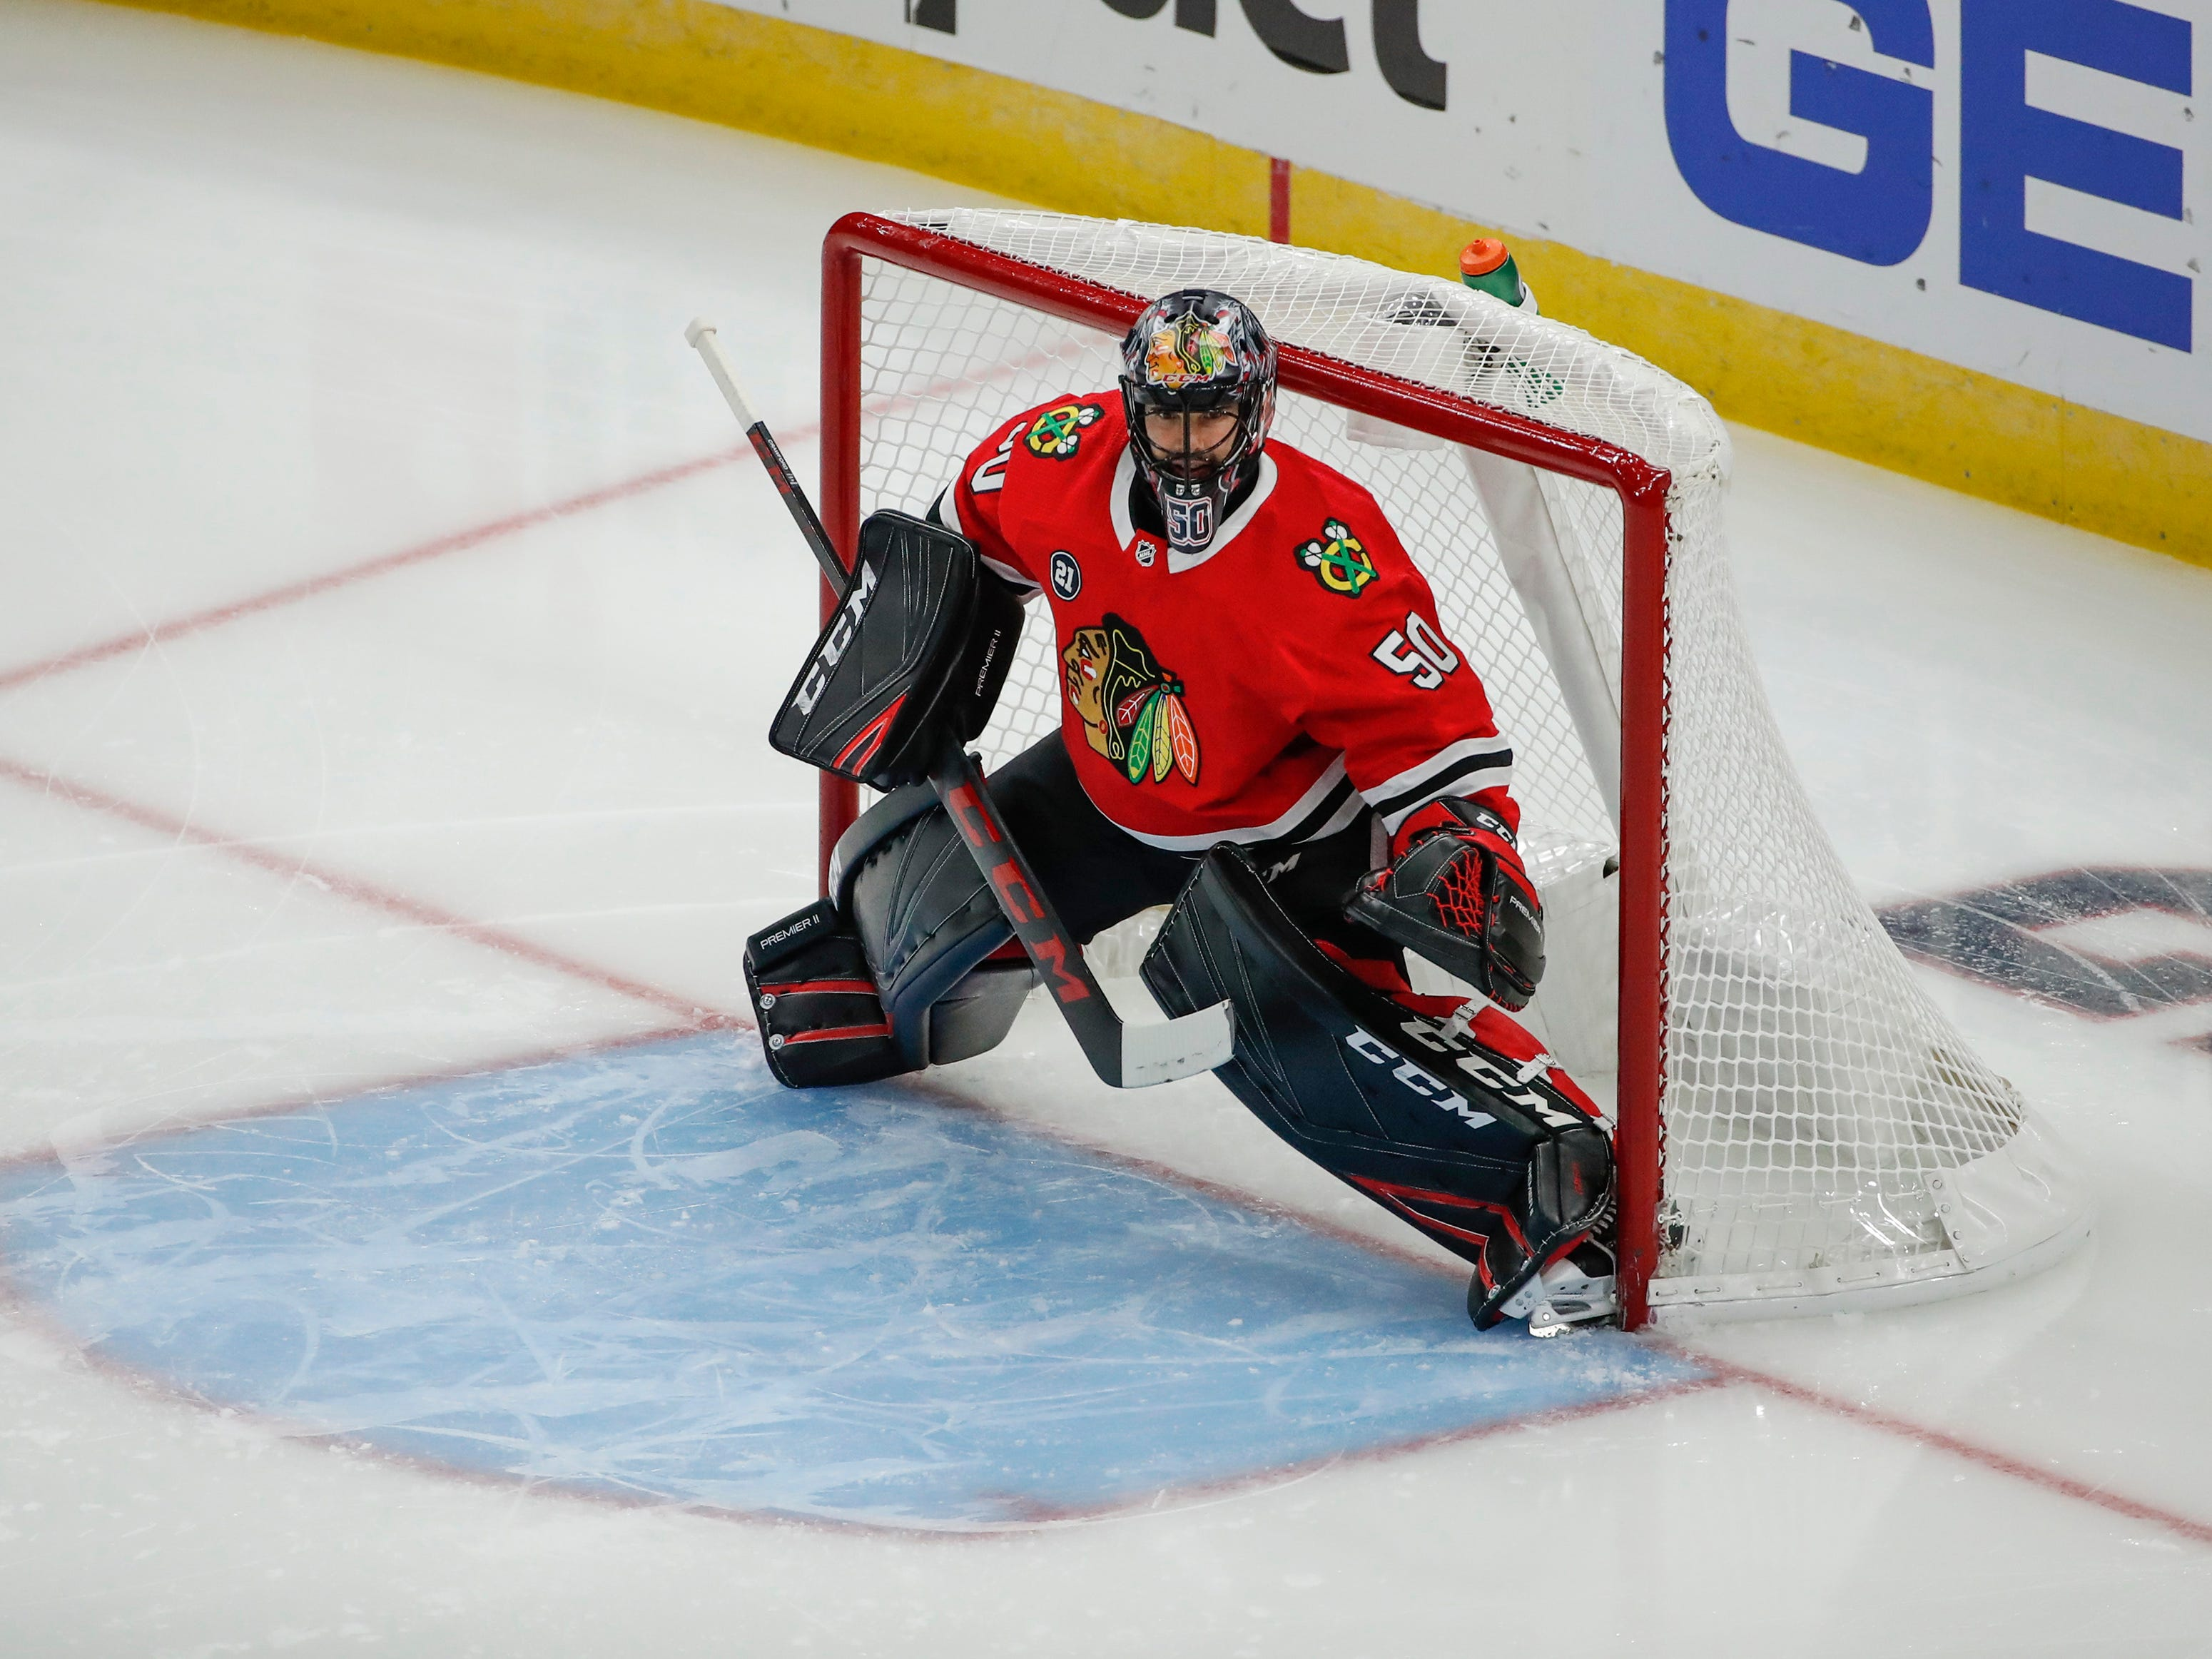 Oct 18, 2018; Chicago, IL, USA; Chicago Blackhawks goaltender Corey Crawford (50) warms up before a hockey game against the Arizona Coyotes at United Center. Mandatory Credit: Kamil Krzaczynski-USA TODAY Sports